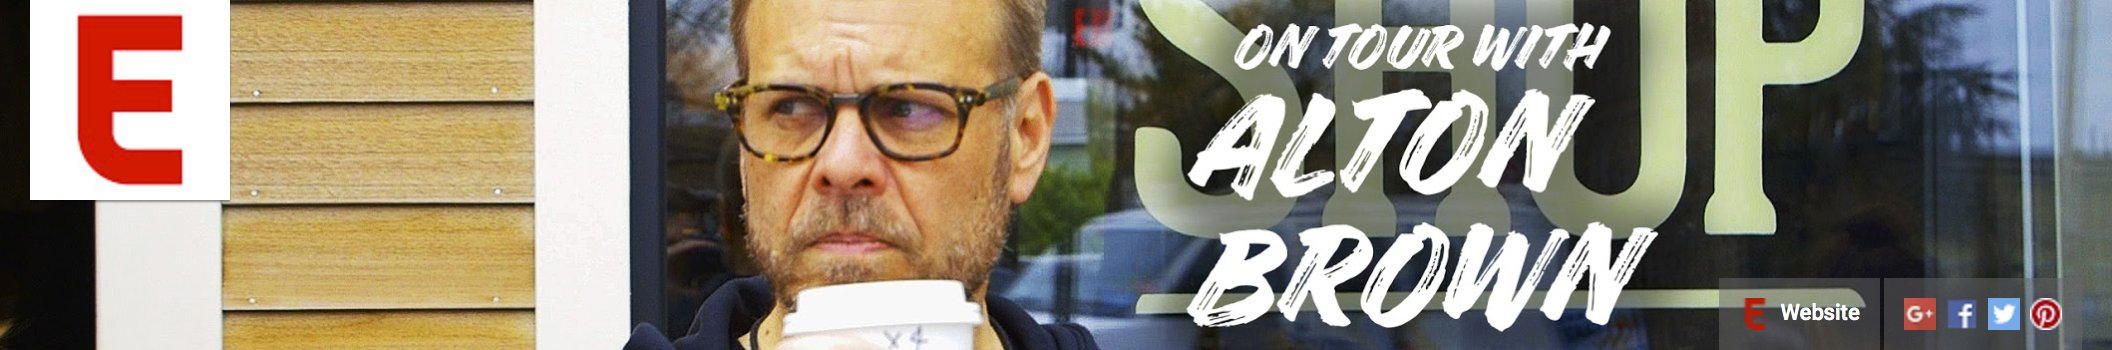 Alton Brown: On Tour — An Eater Series